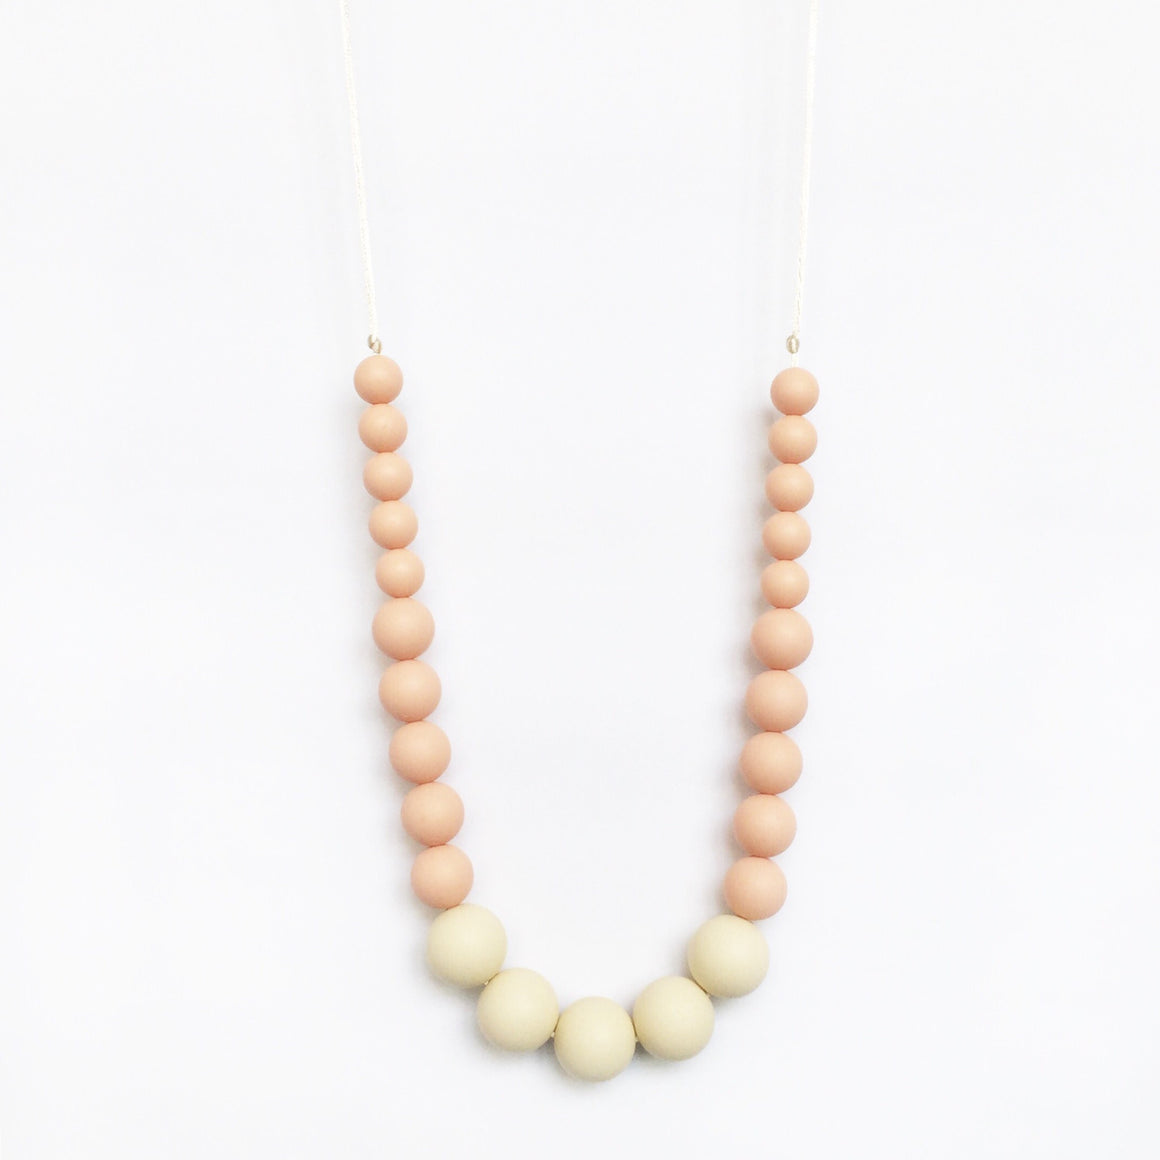 Color Block Silicone Necklace - Blush